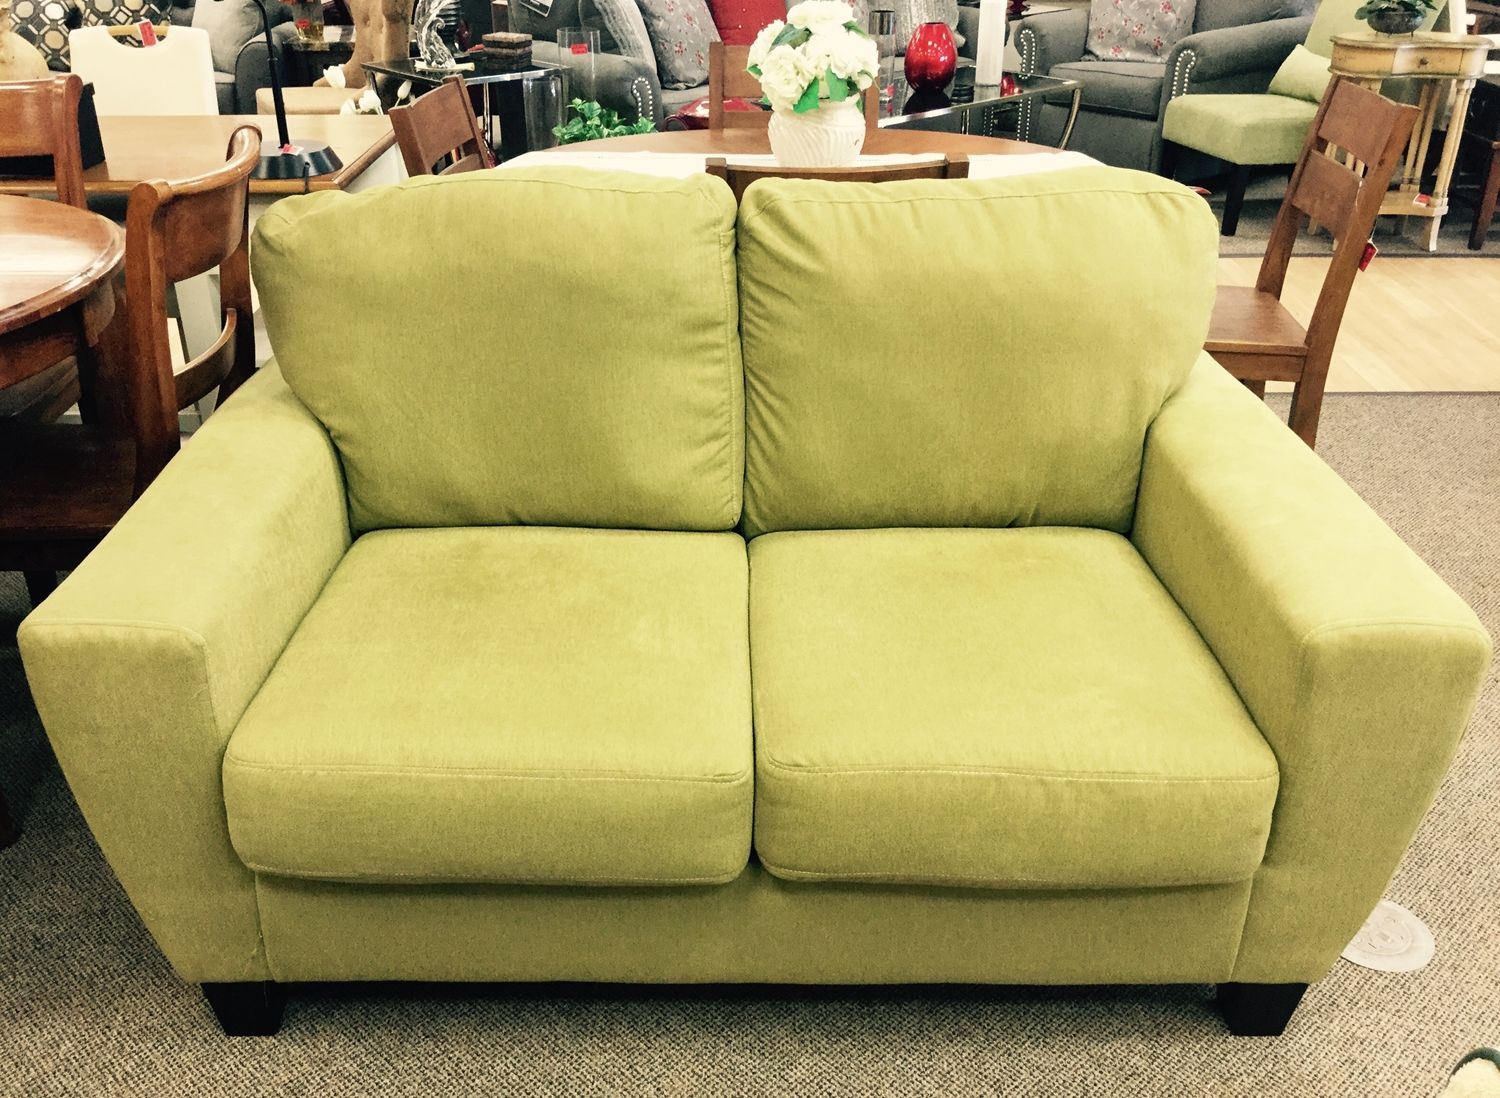 Fresh Deals Keep Rolling Into All Weekend Long At New Uses Very Clean Lime Green Sagen Sofa From Ashley Furniture Measuri Ashley Furniture Furniture Love Seat